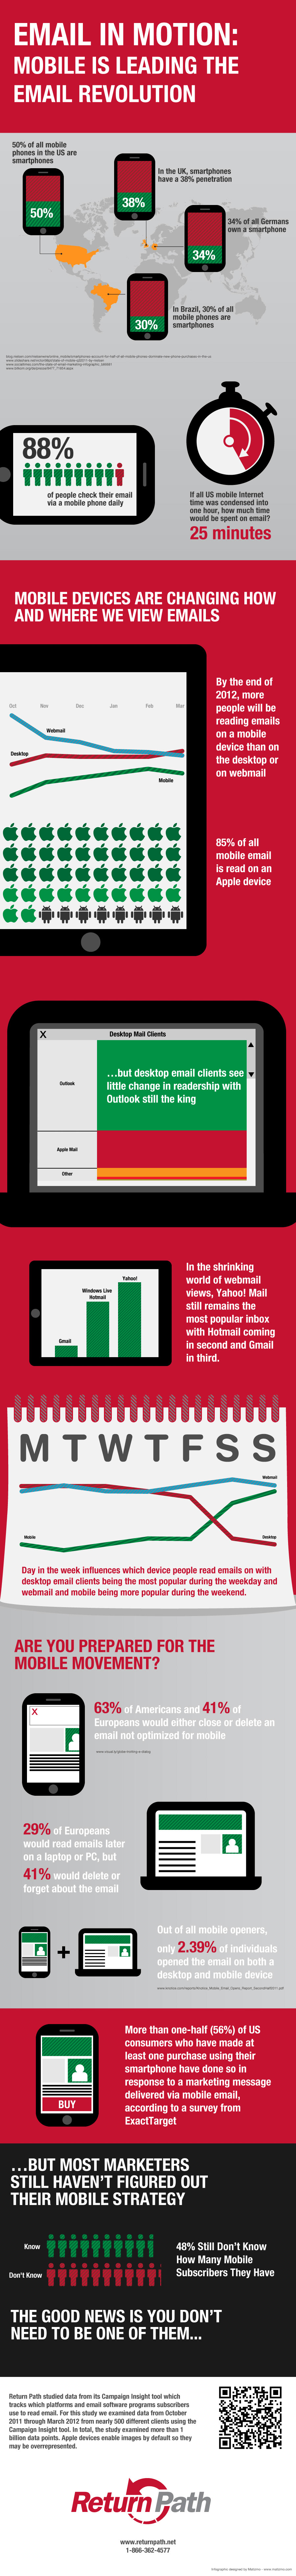 Email-In-Motion-infographic